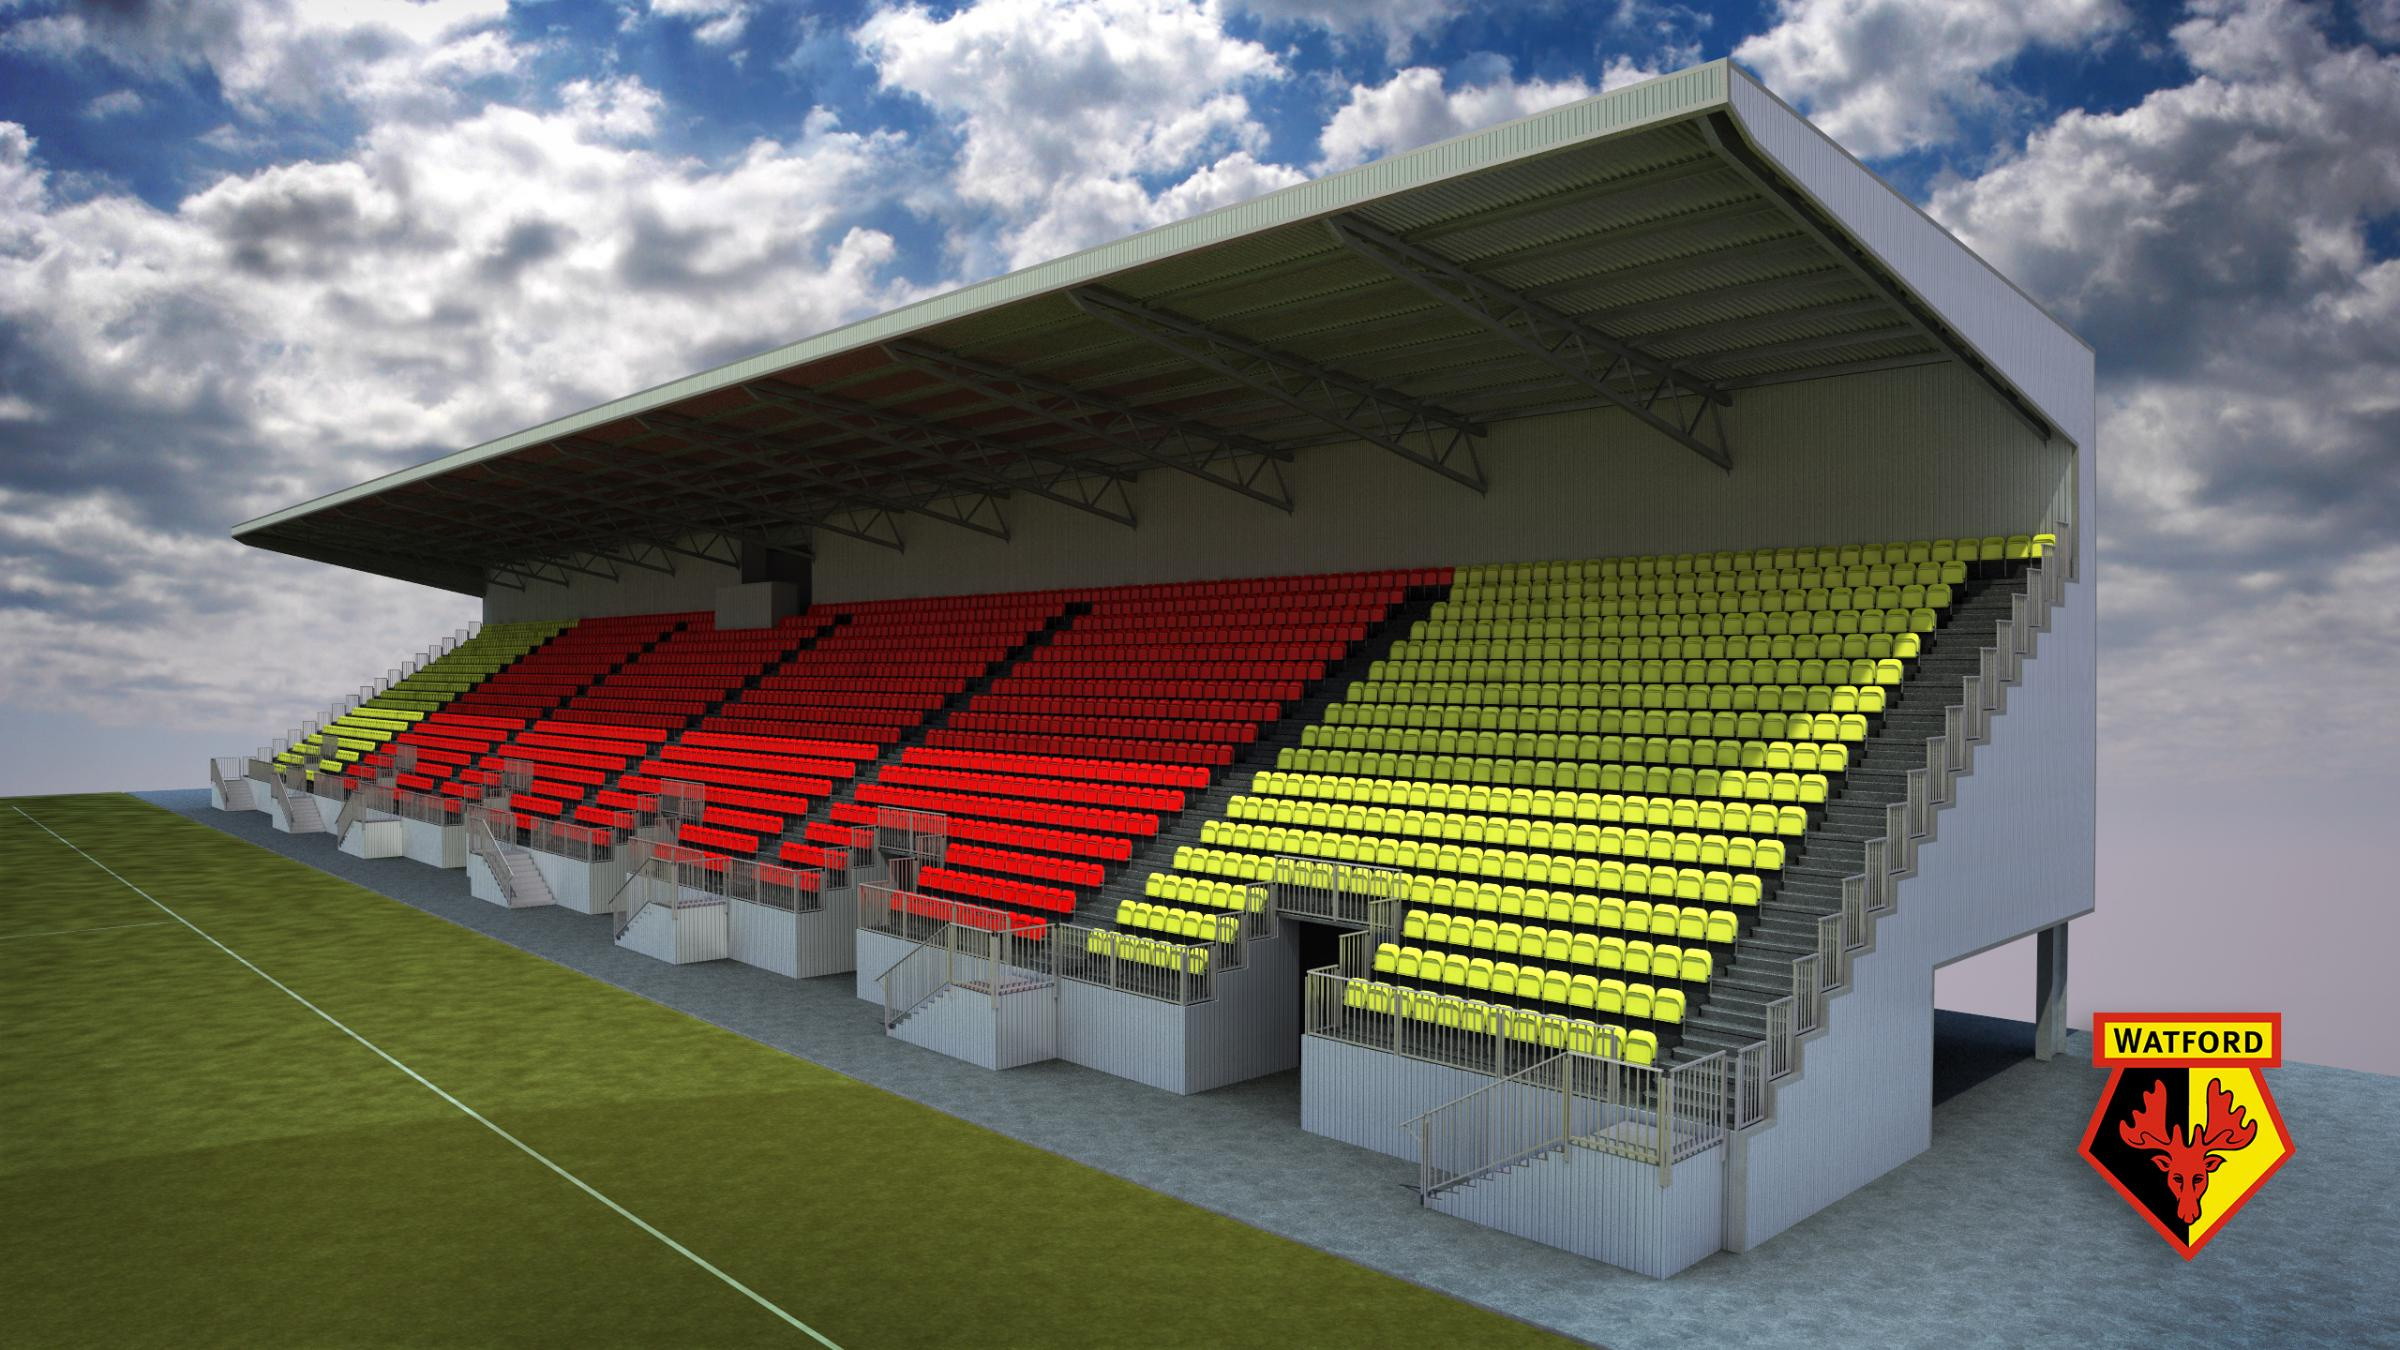 Here is an initial design for the East Stand structure.